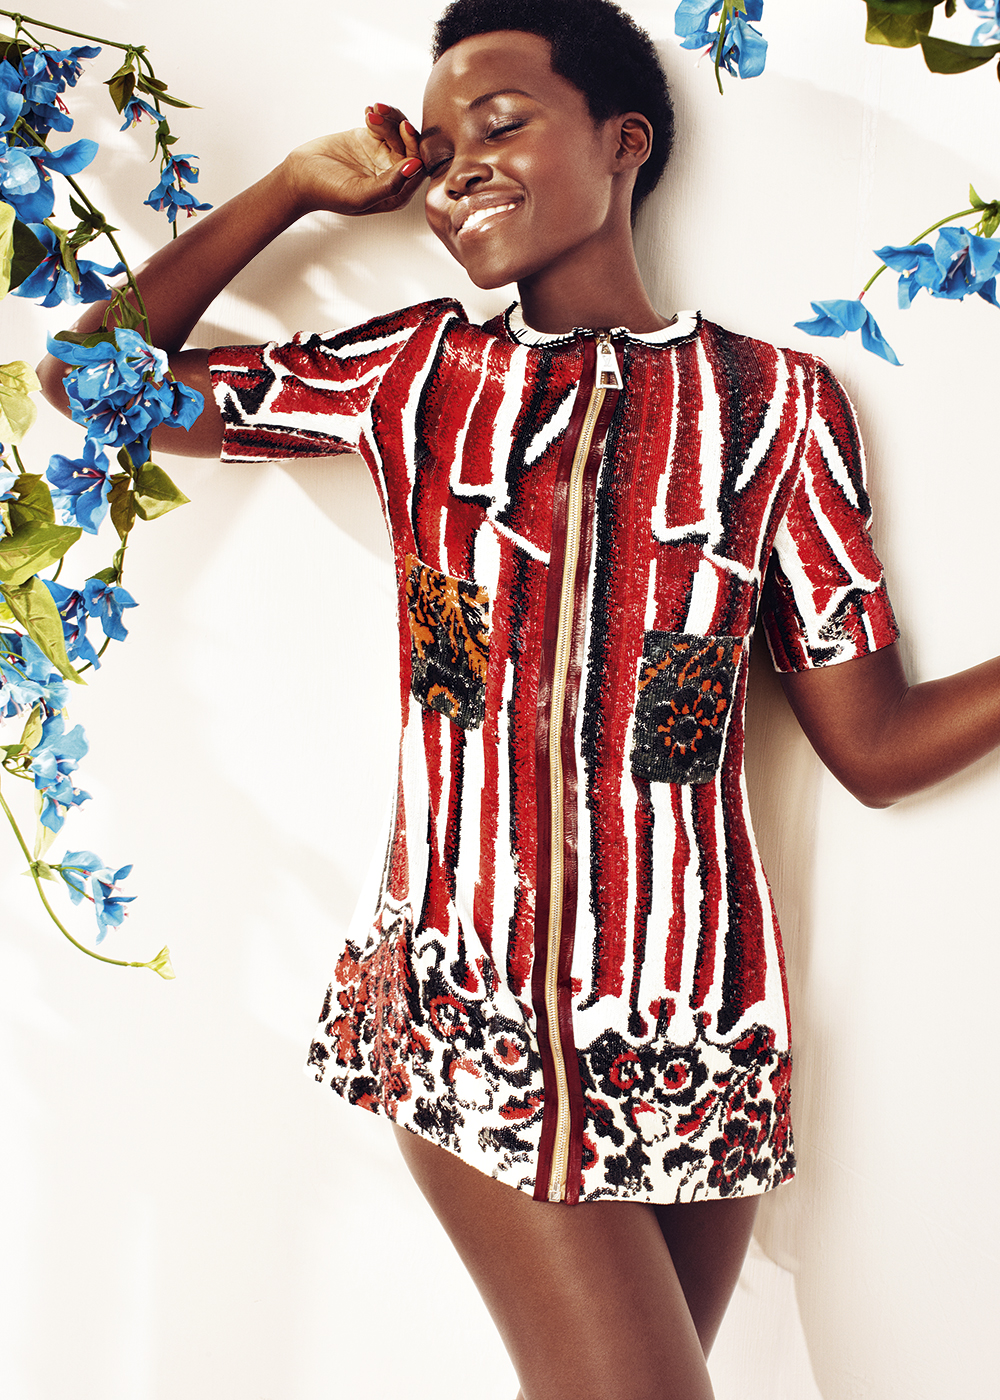 Flawless-Harpers- Bazaar-UK-Proclaims Lupita-Nyongo-As- The-New-Face-Of- Beauty-In-May-2015- Issue-2